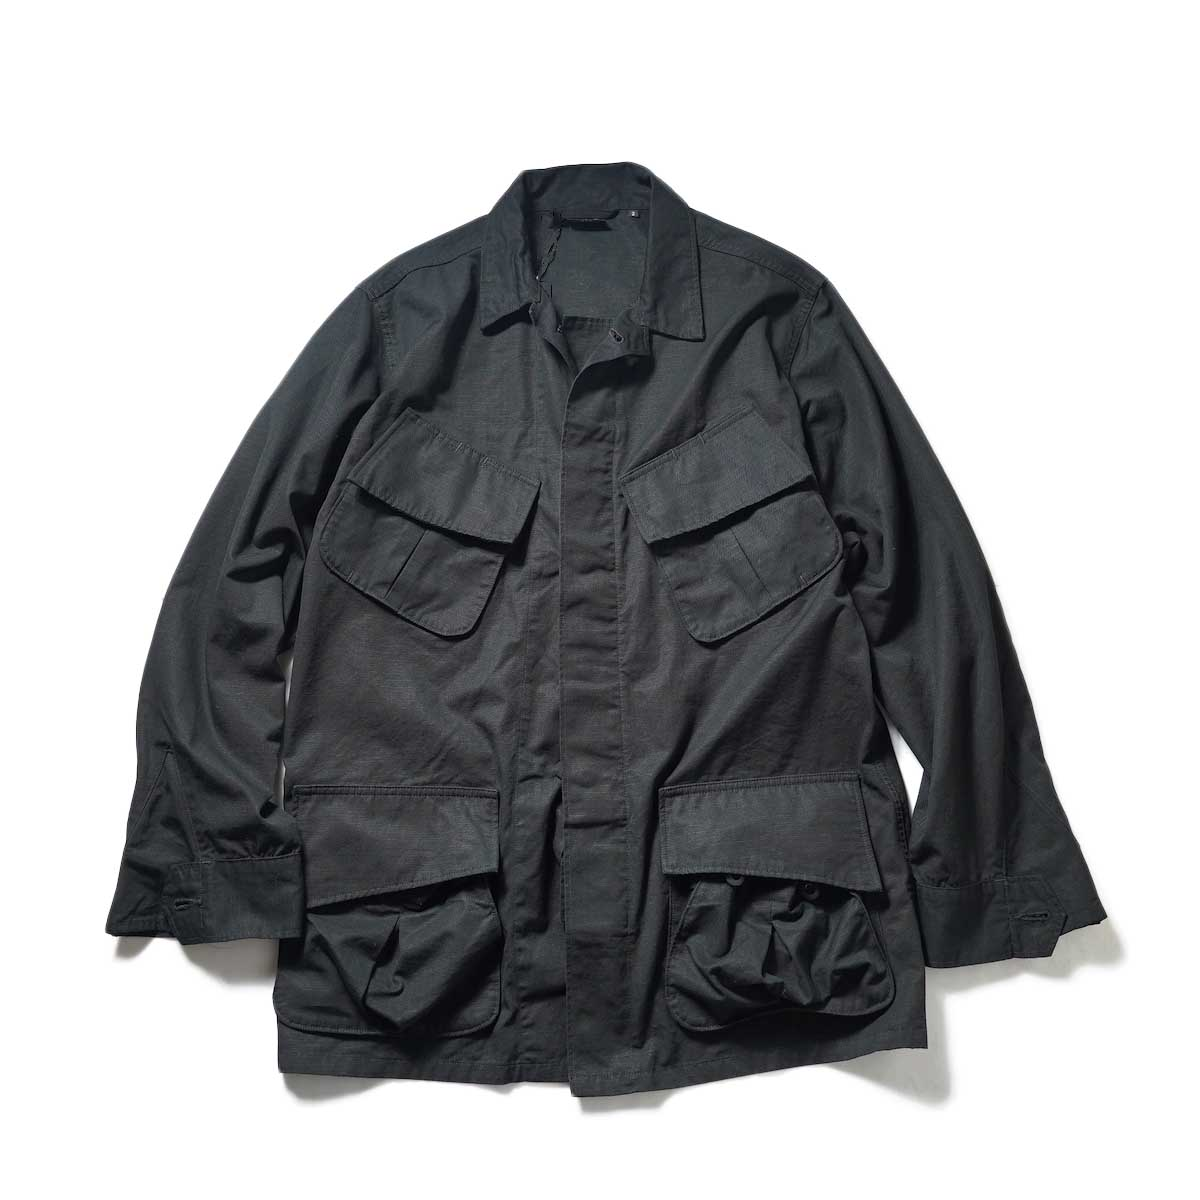 orSlow / US Army Tropical Jacket (Black Rip Stop) 正面